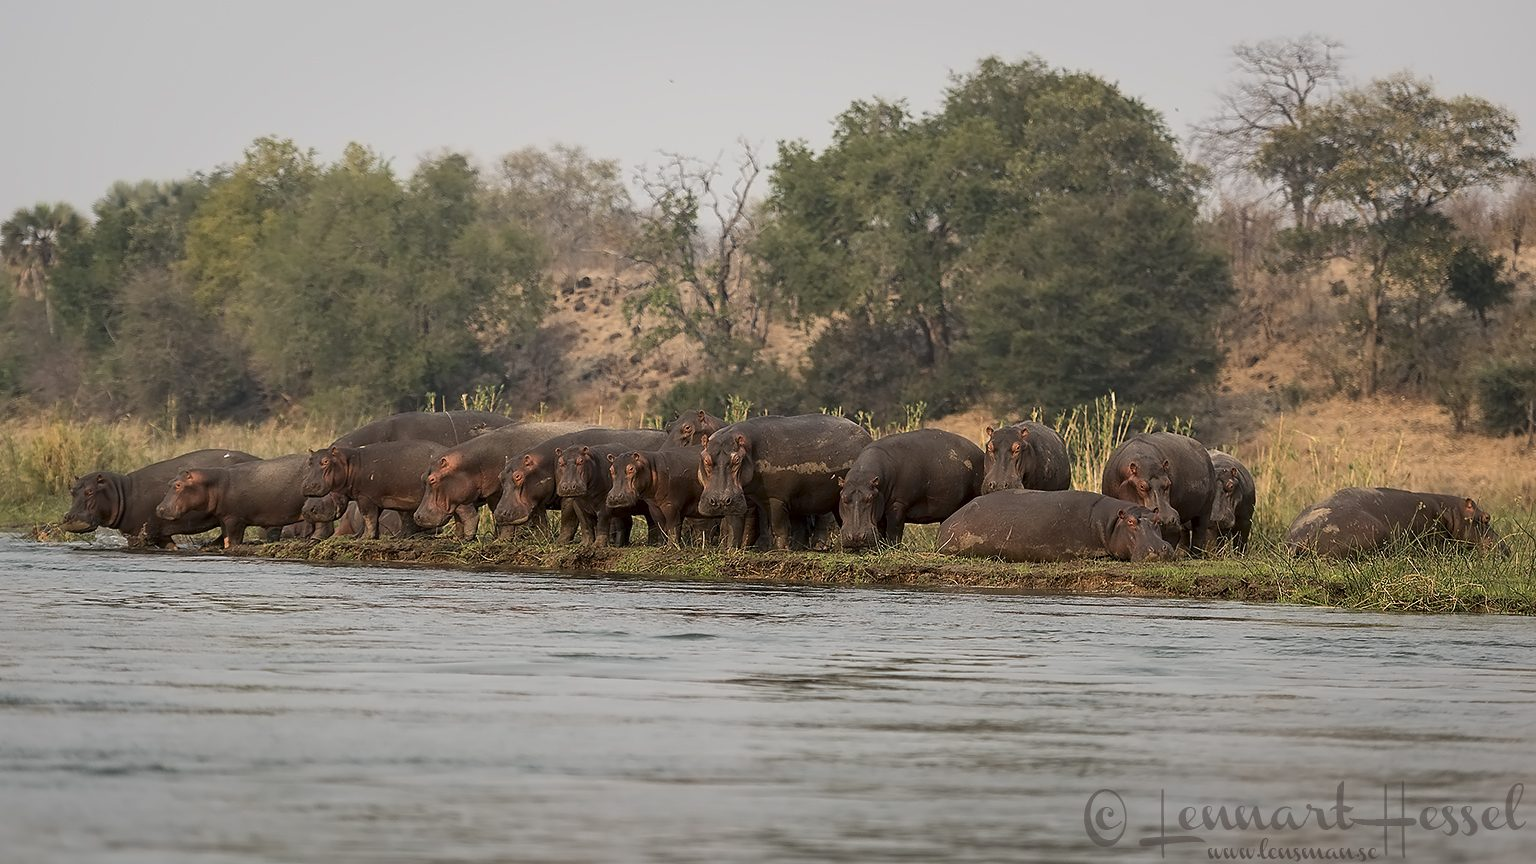 Hippos at the Zambezi river